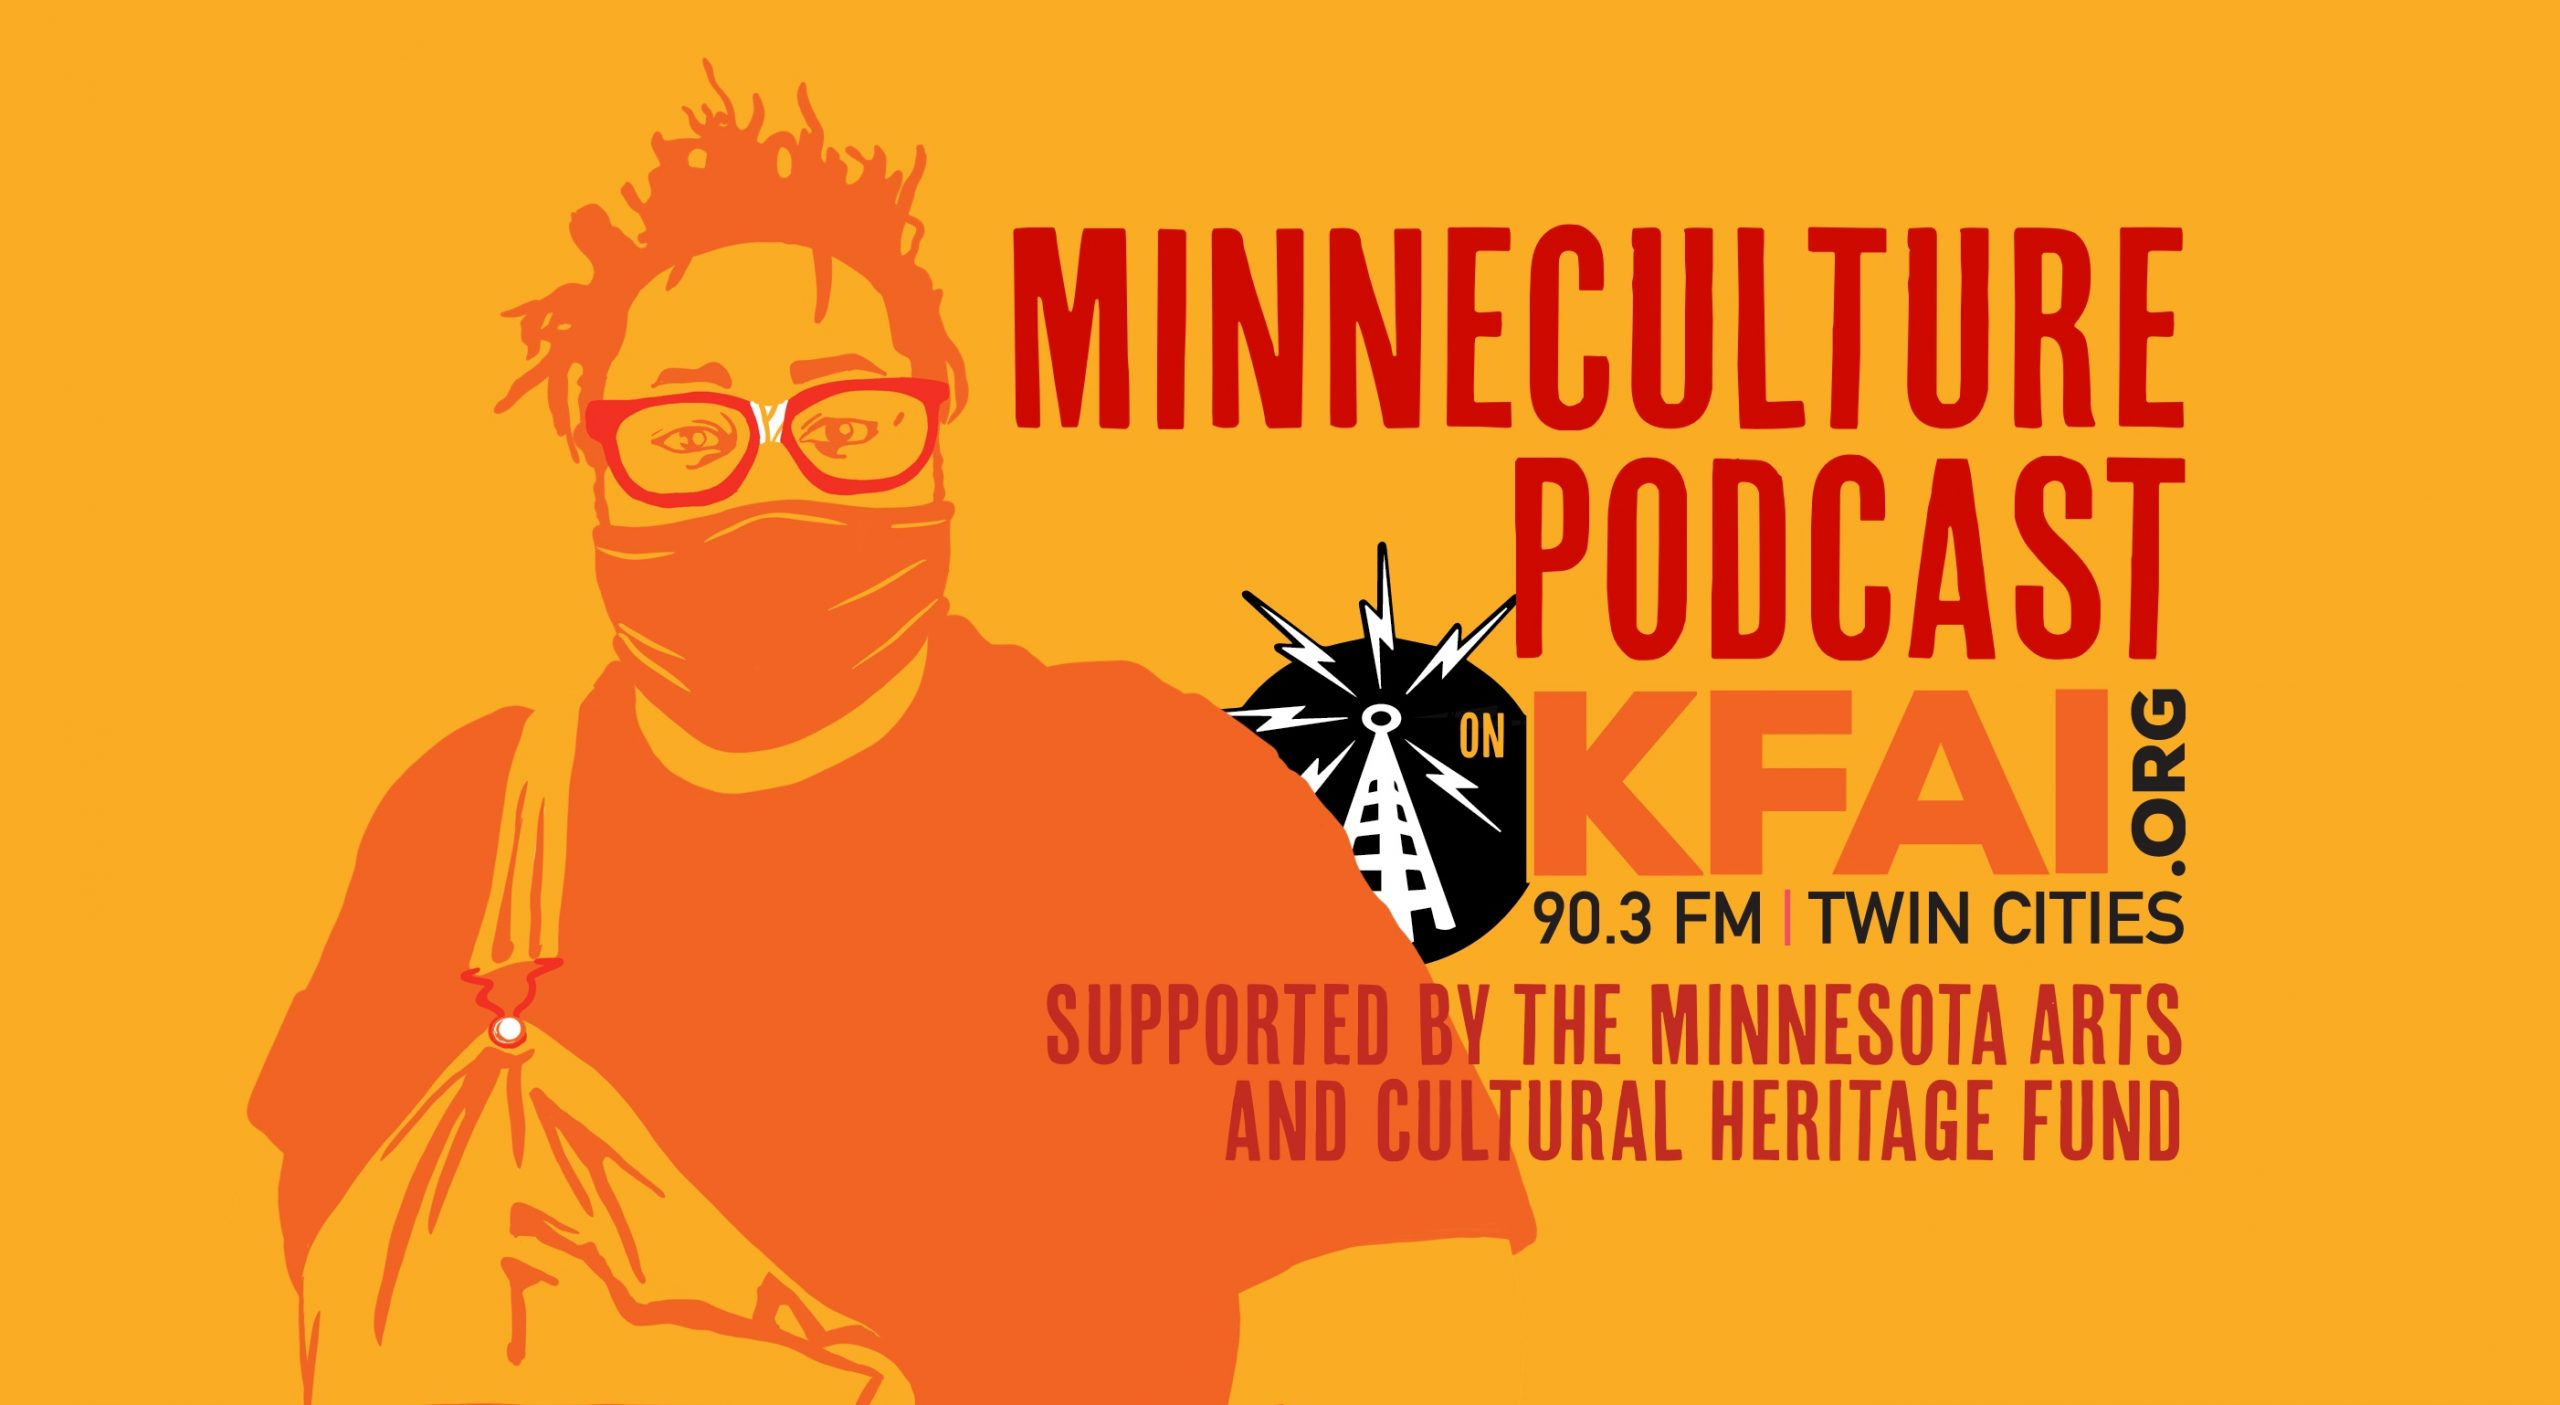 MinneCulture Podcast promo ad featuring illustration of hip hop artist Nur-D